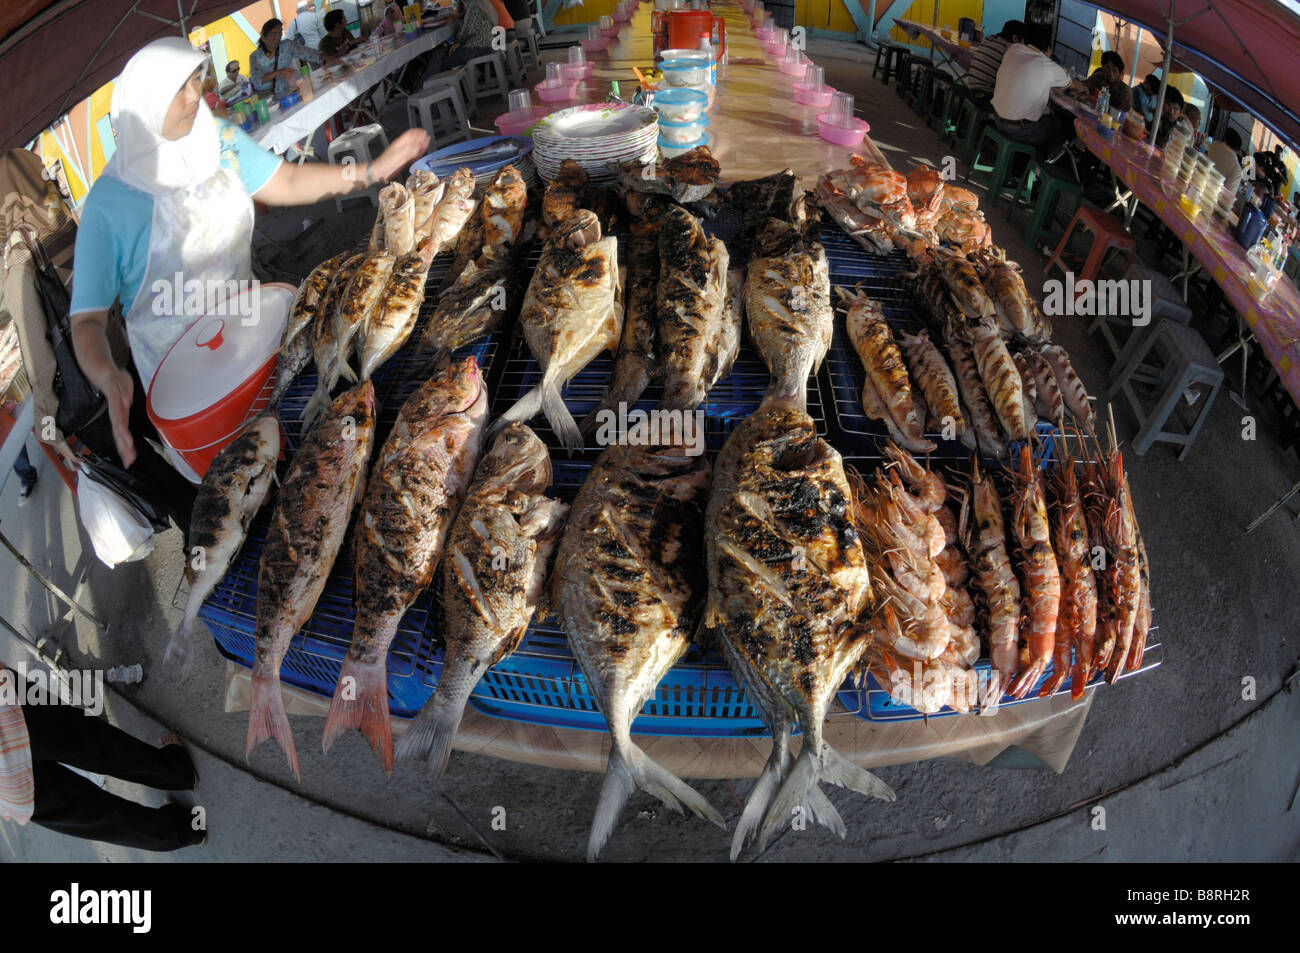 Barbecued fish for sale at a restaurant Kota Kinabalu Sabah Malaysia Borneo South est Asia - Stock Image